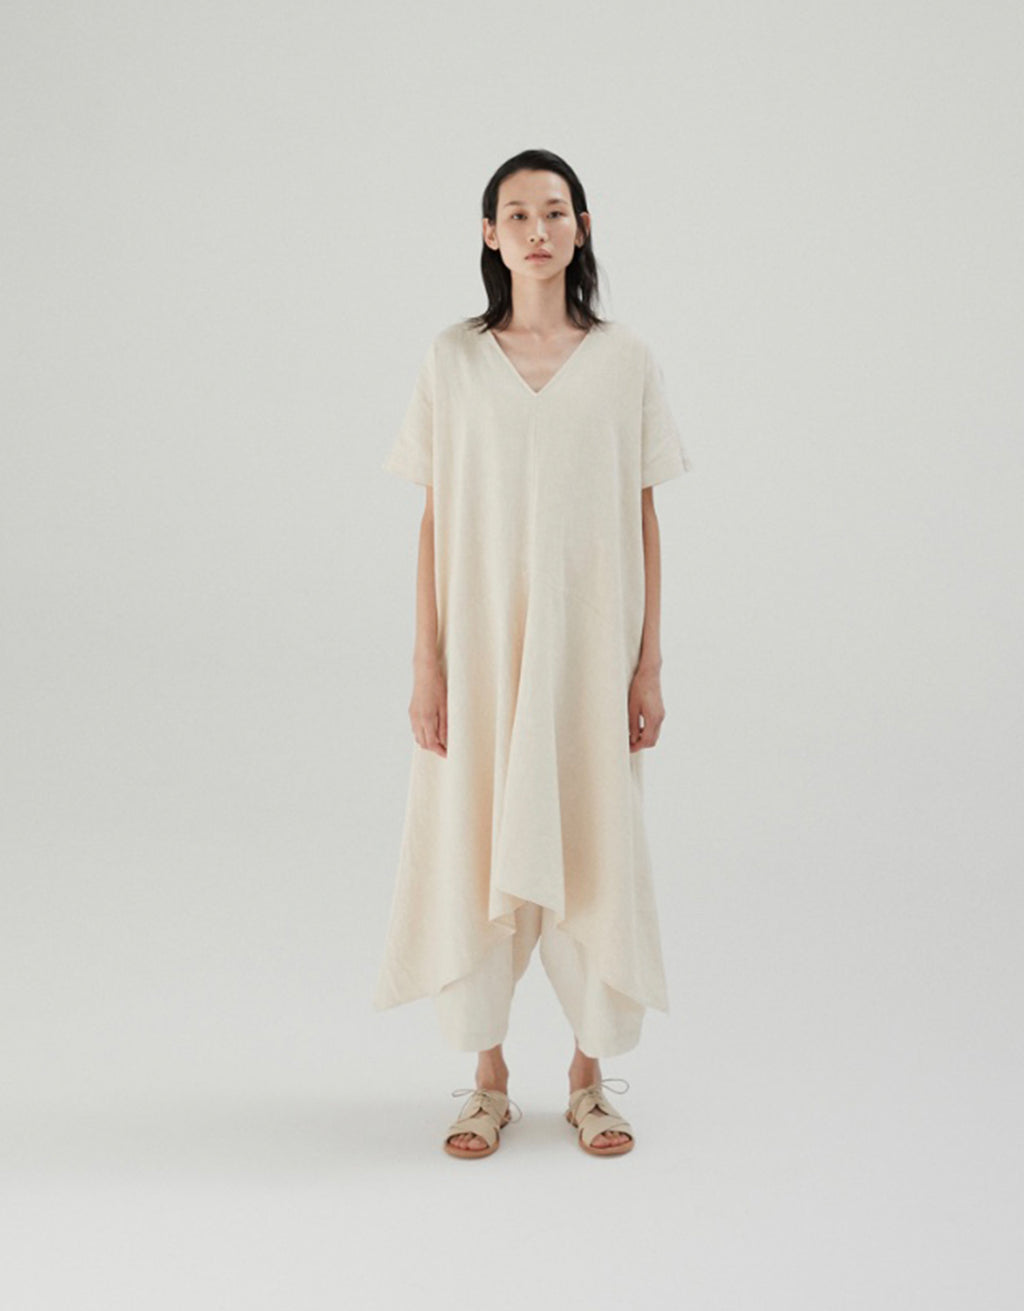 Model wears Monica Cordera Asymmetric Ramie Dress in Ivory. Available at FAWN Toronto.